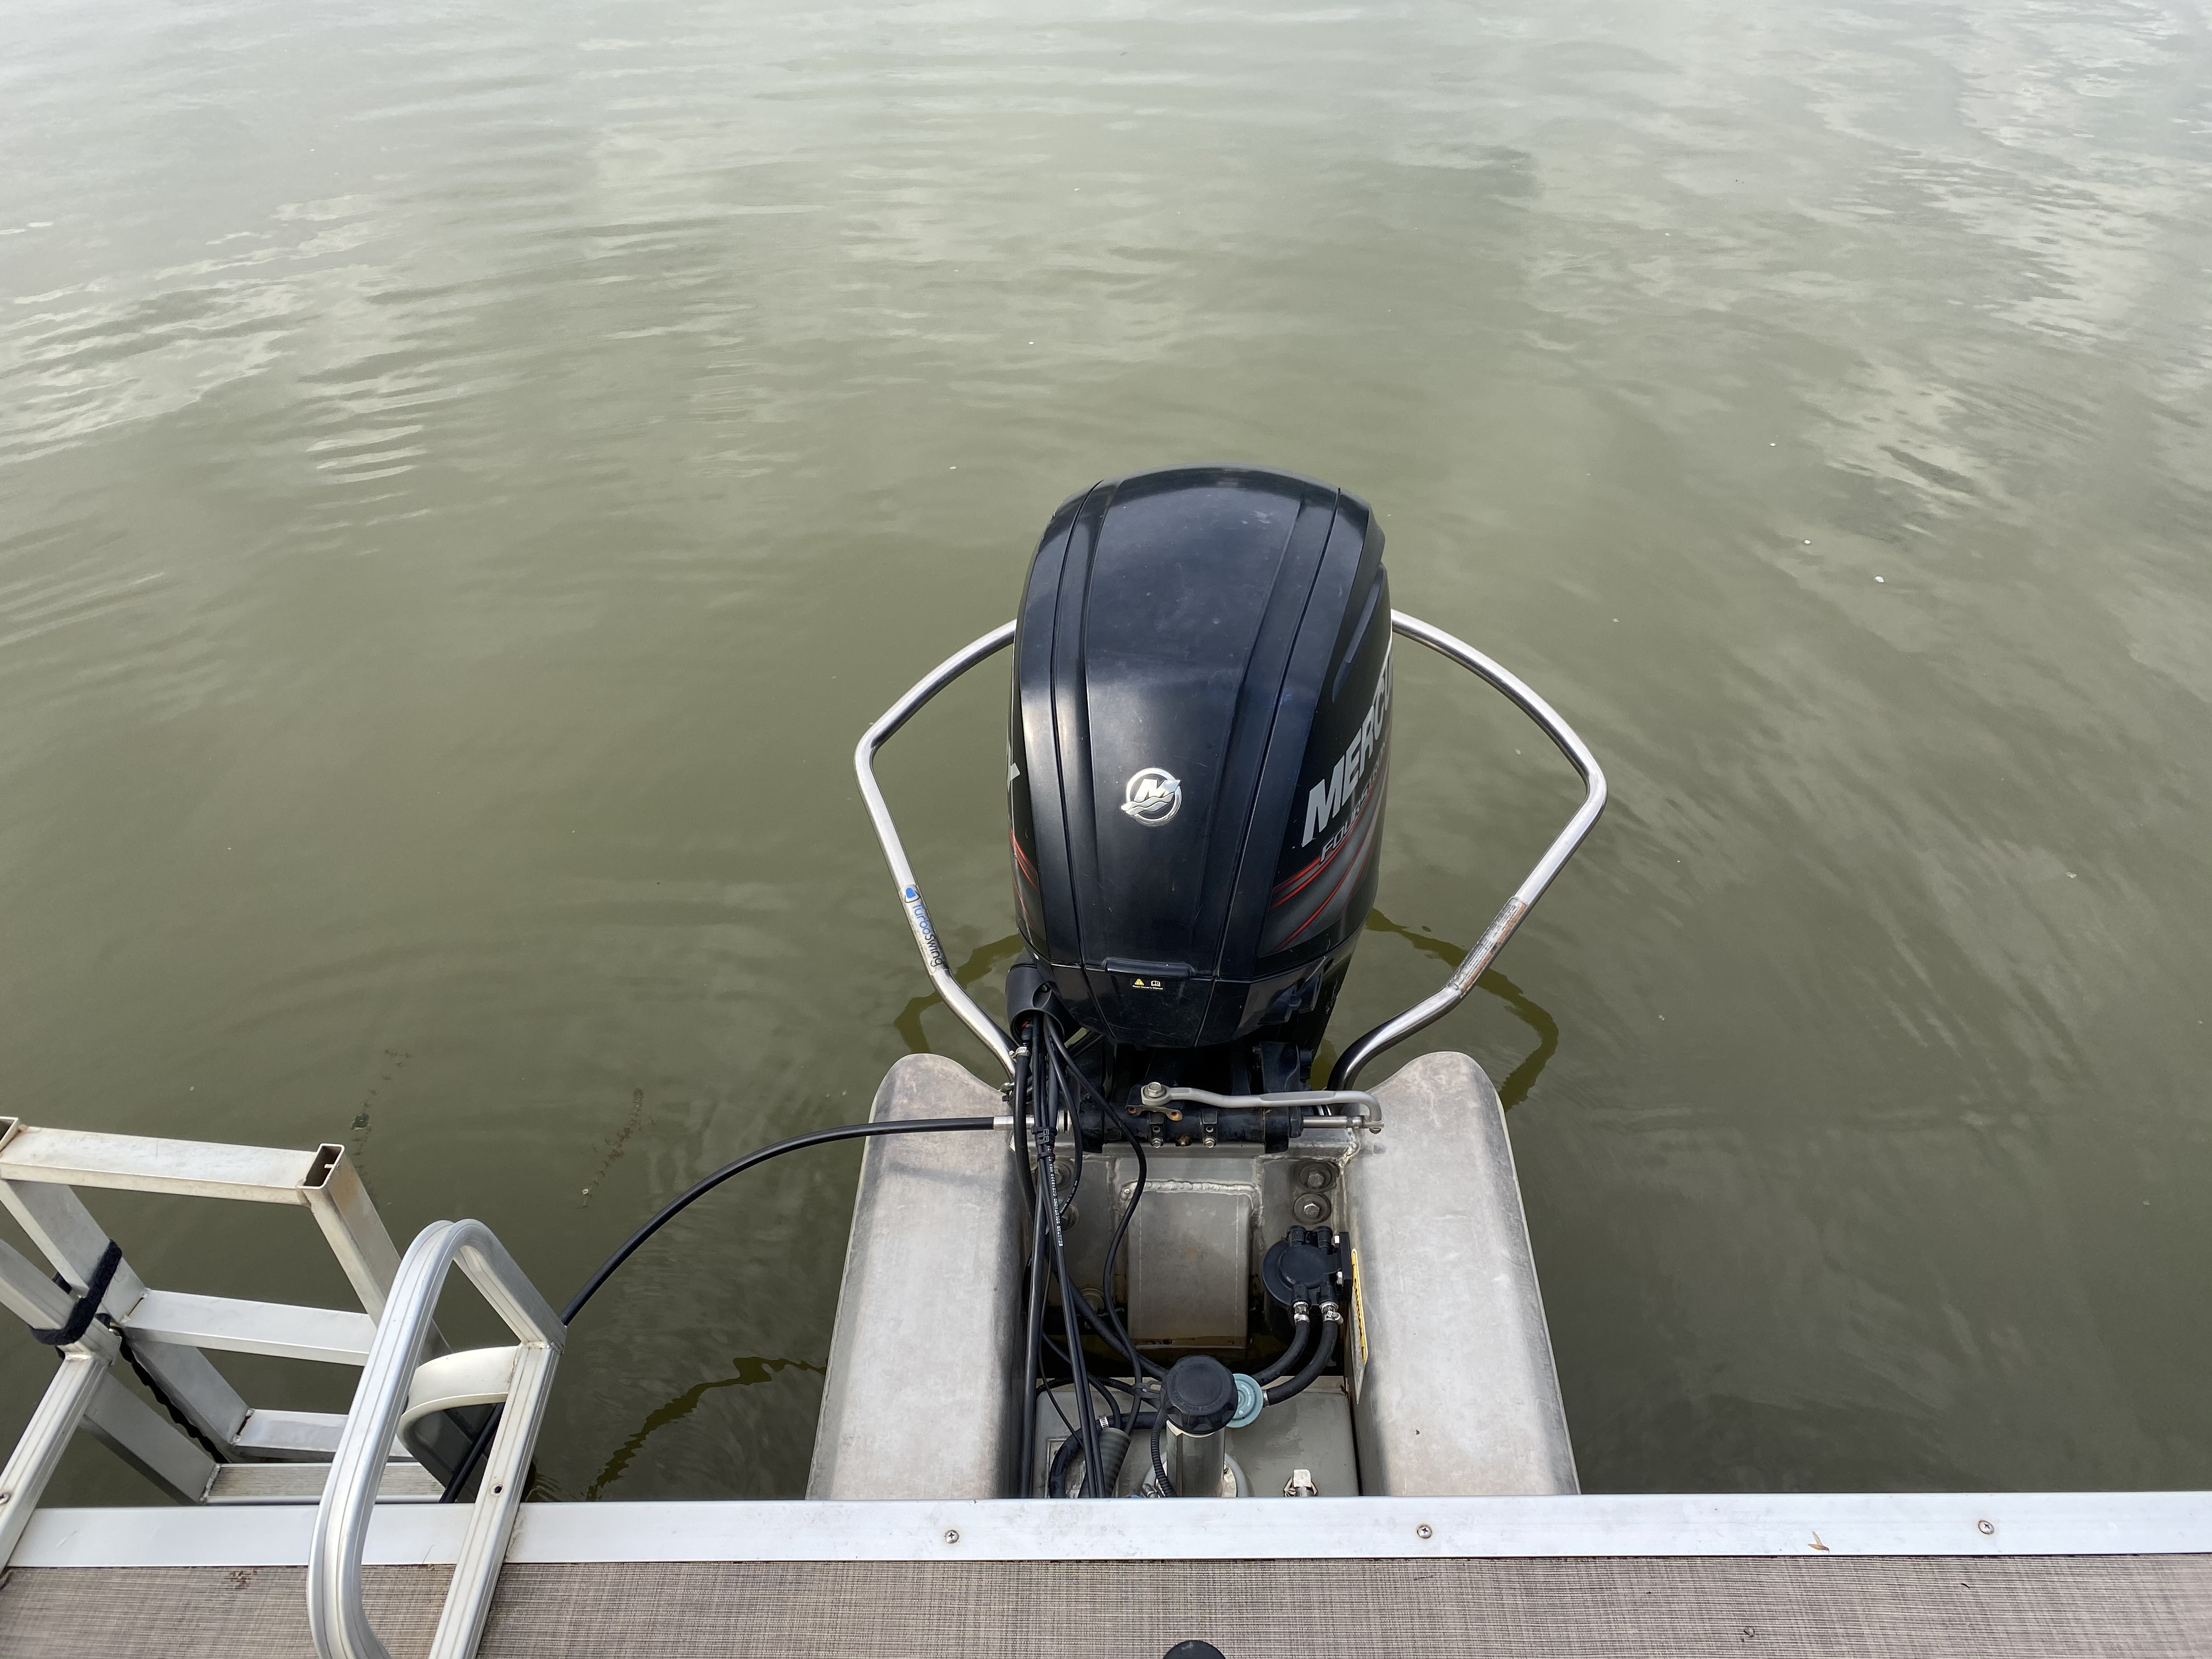 2019 Sun Tracker boat for sale, model of the boat is PARTY BARGE 22 w/ Mercury 115Hp 4S & Image # 13 of 22